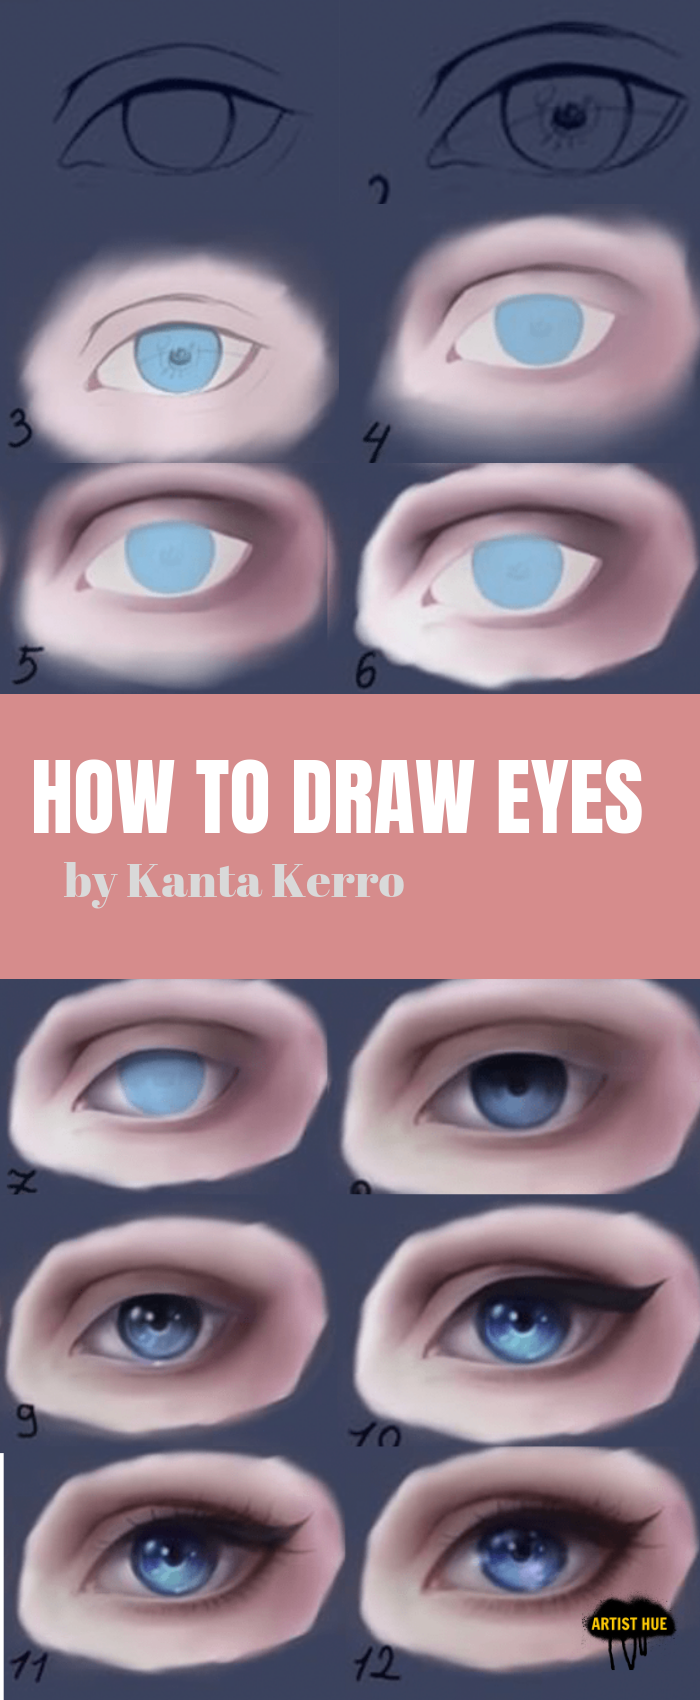 How to draw eyes | How to draw tutorials | step by step tutorials | digital art | how to draw like a pro